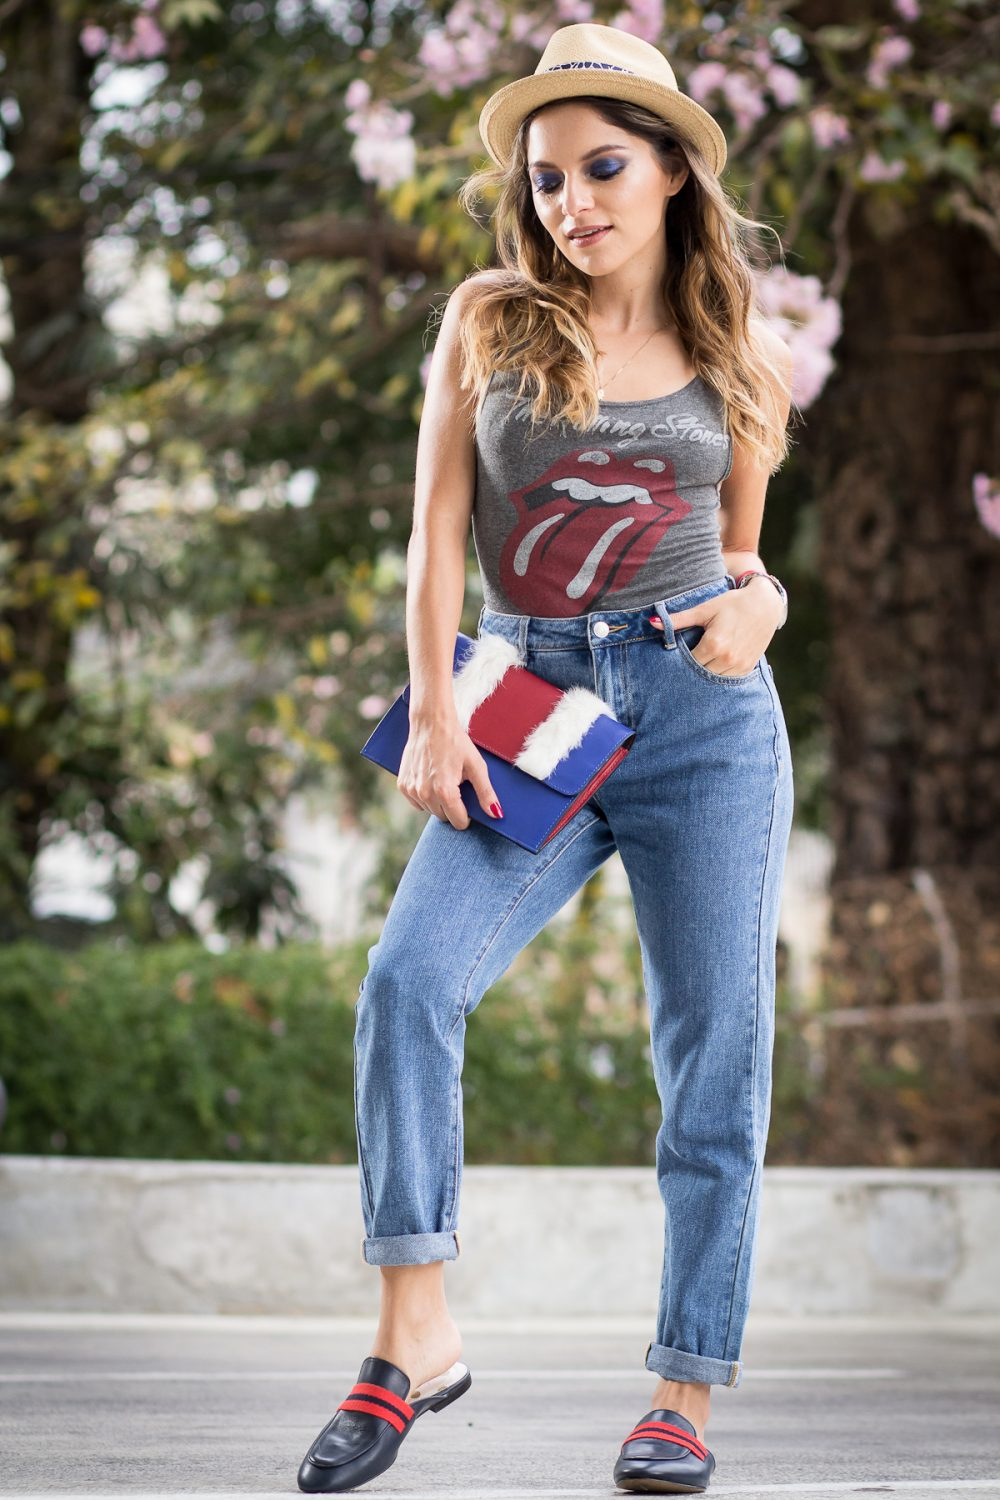 Whitney's Wonderland NYC Top Fashion Blogger wears rolling stones bodysuit, Boden espadrilles and Proud Bag